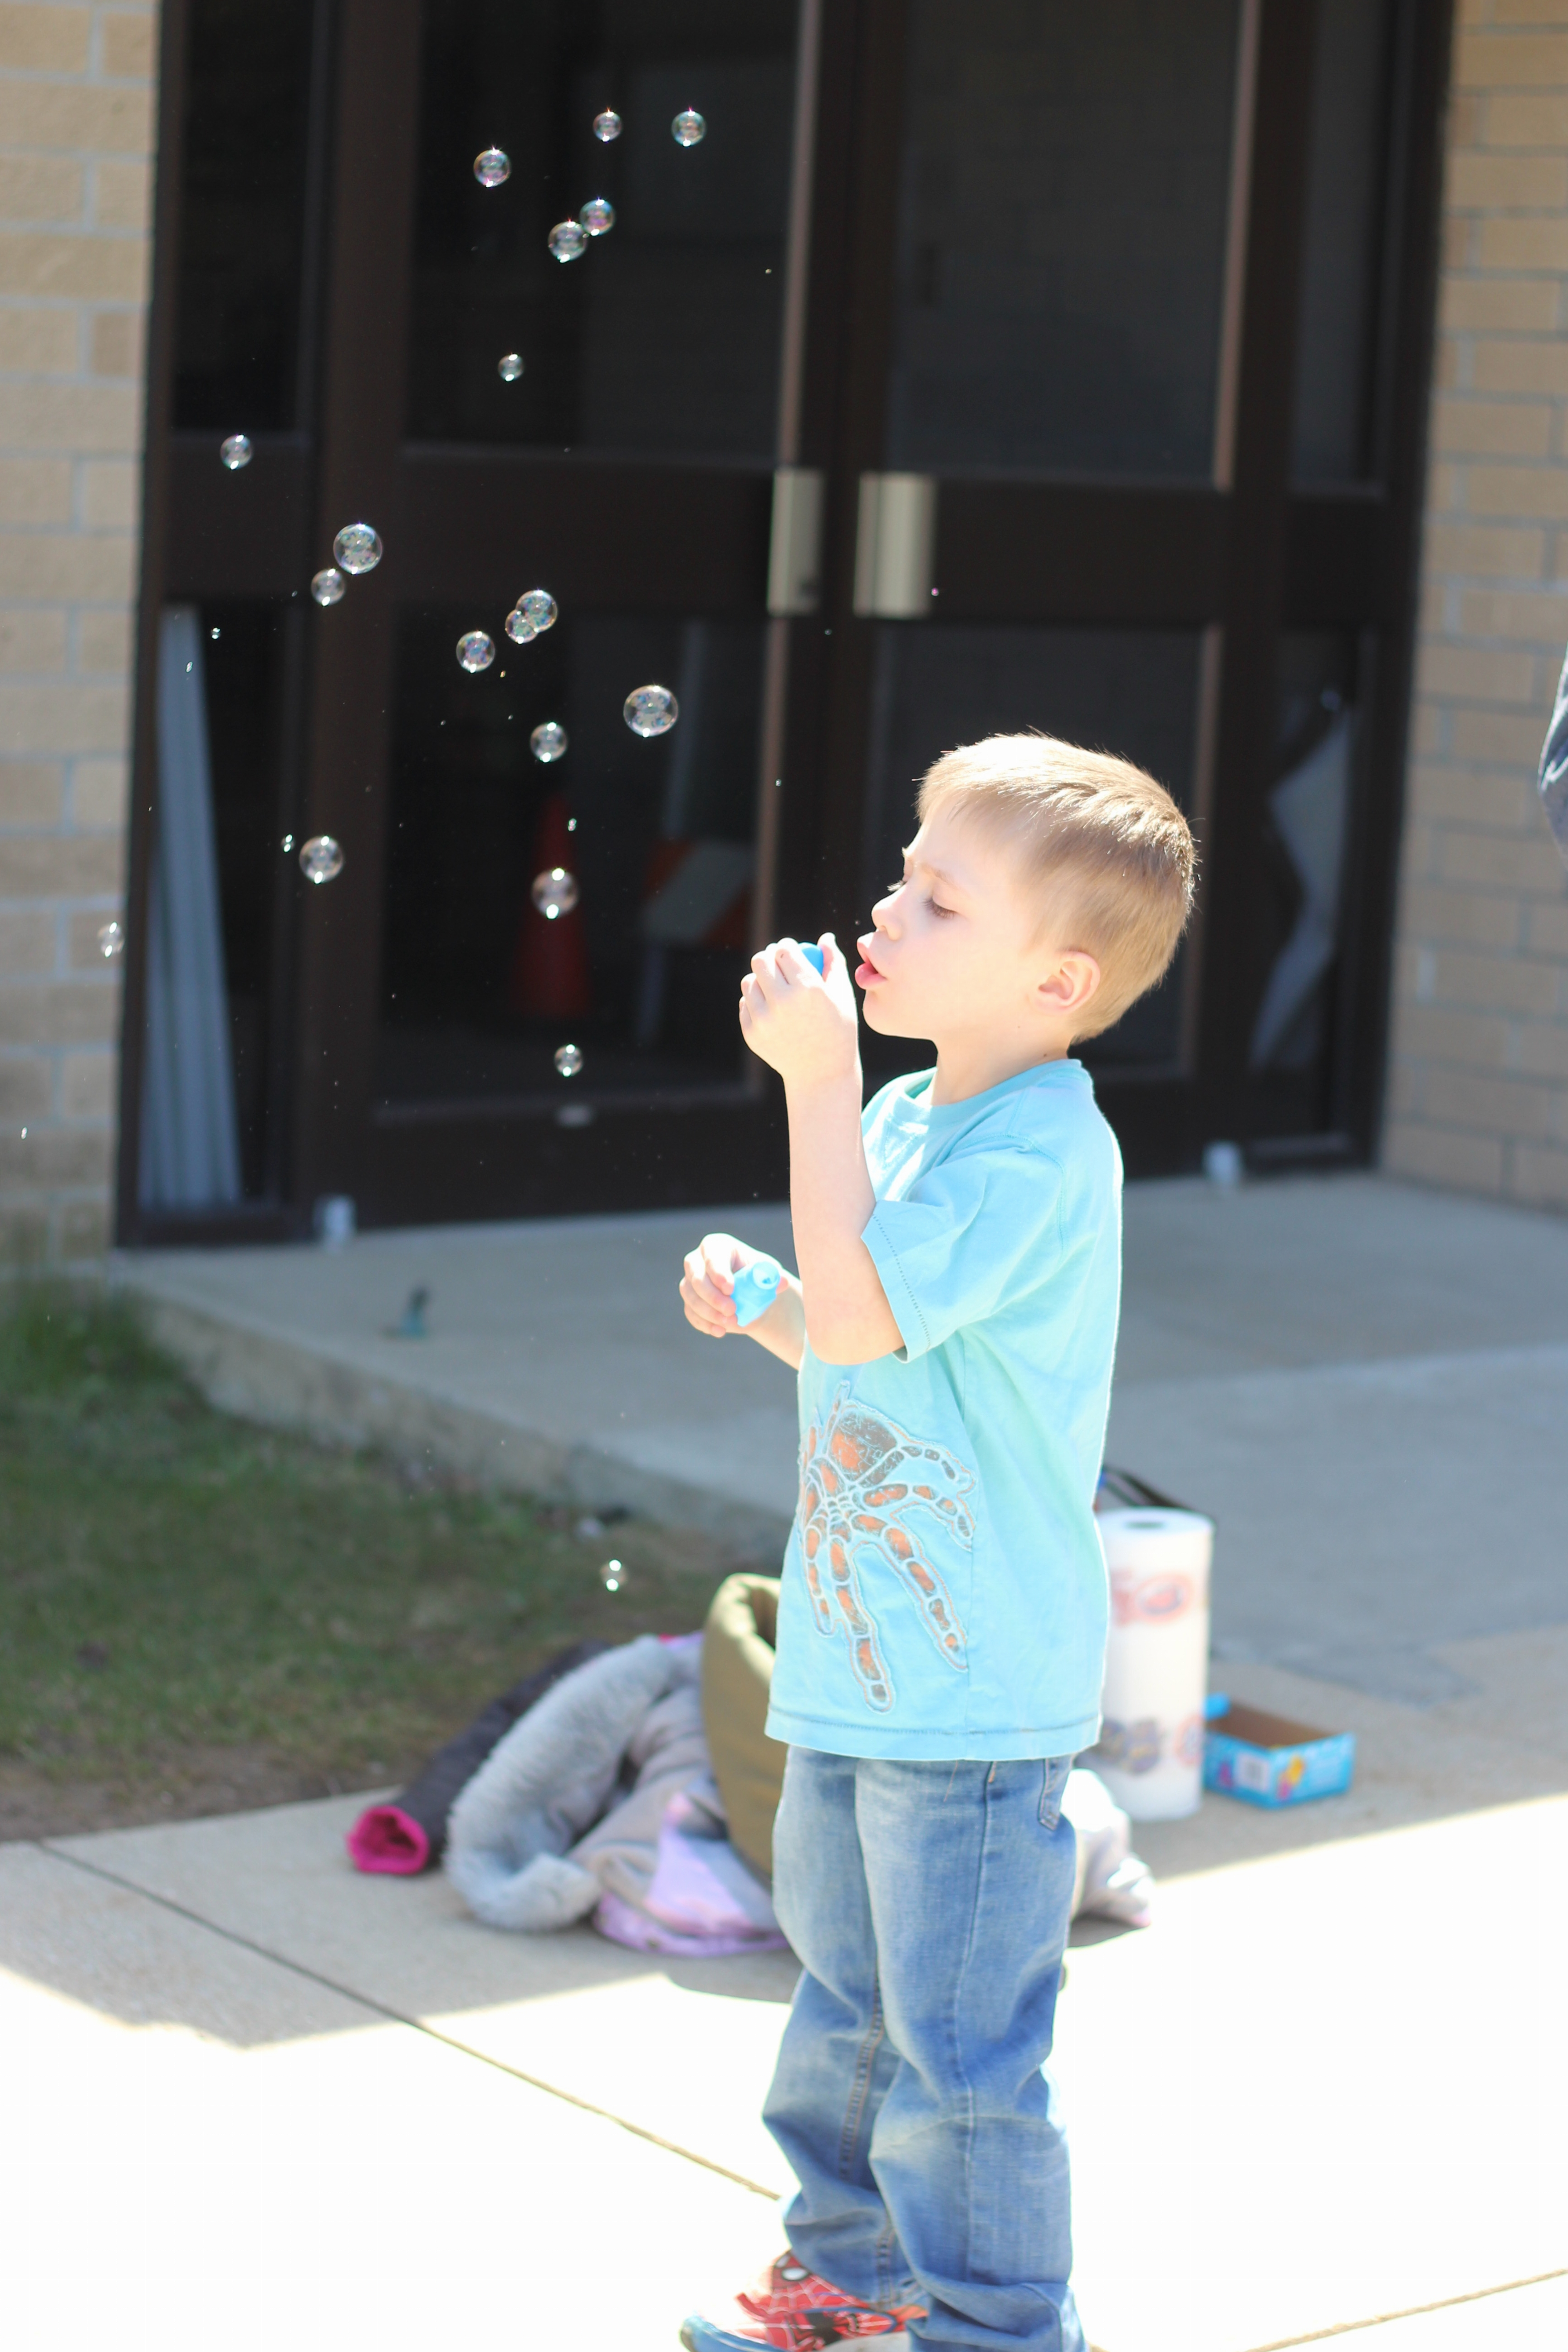 Student plays with bubbles.